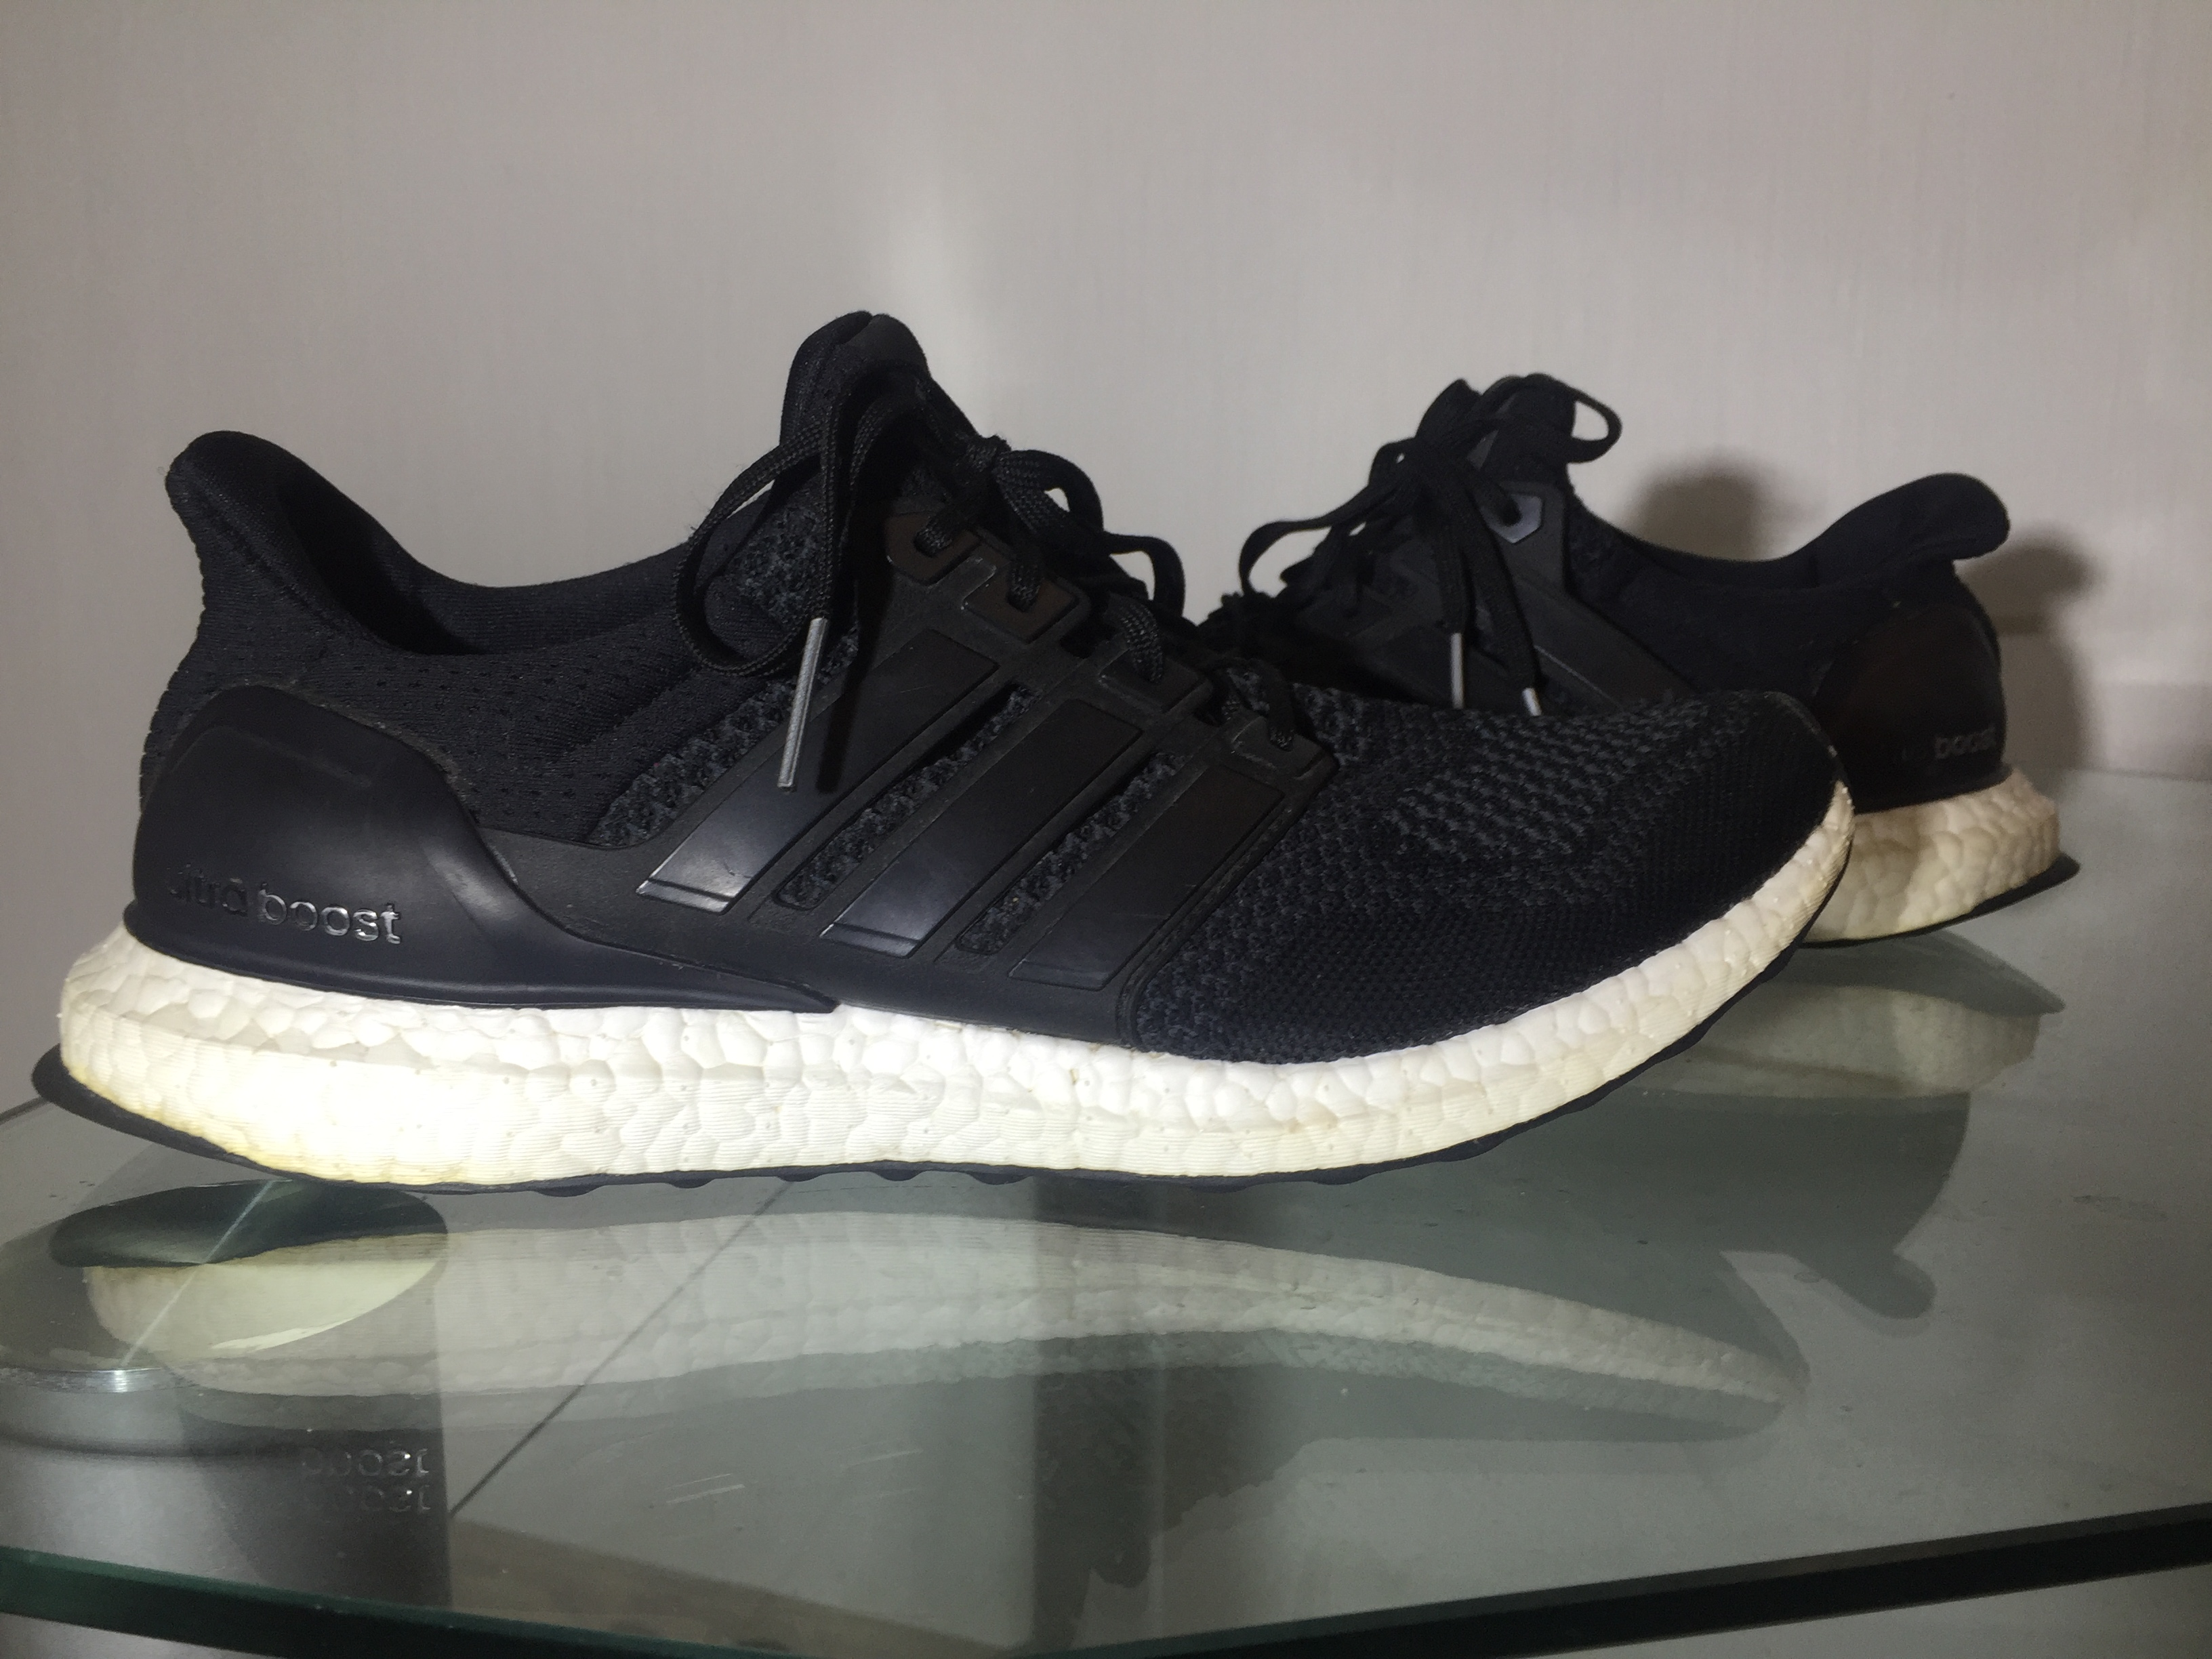 7467078ad683c Adidas Ultra Boost W S77514 Black Size 9.5 - Low-Top Sneakers for Sale -  Grailed